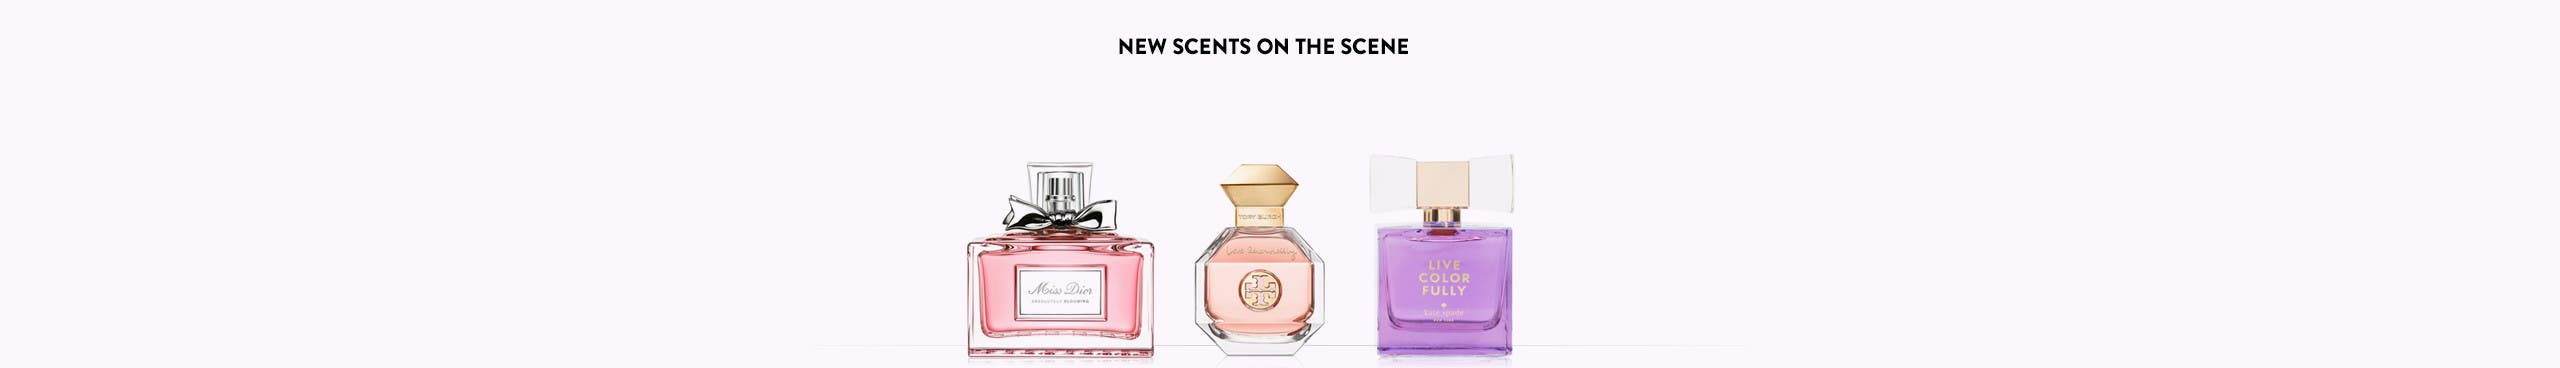 New scents on the scene.